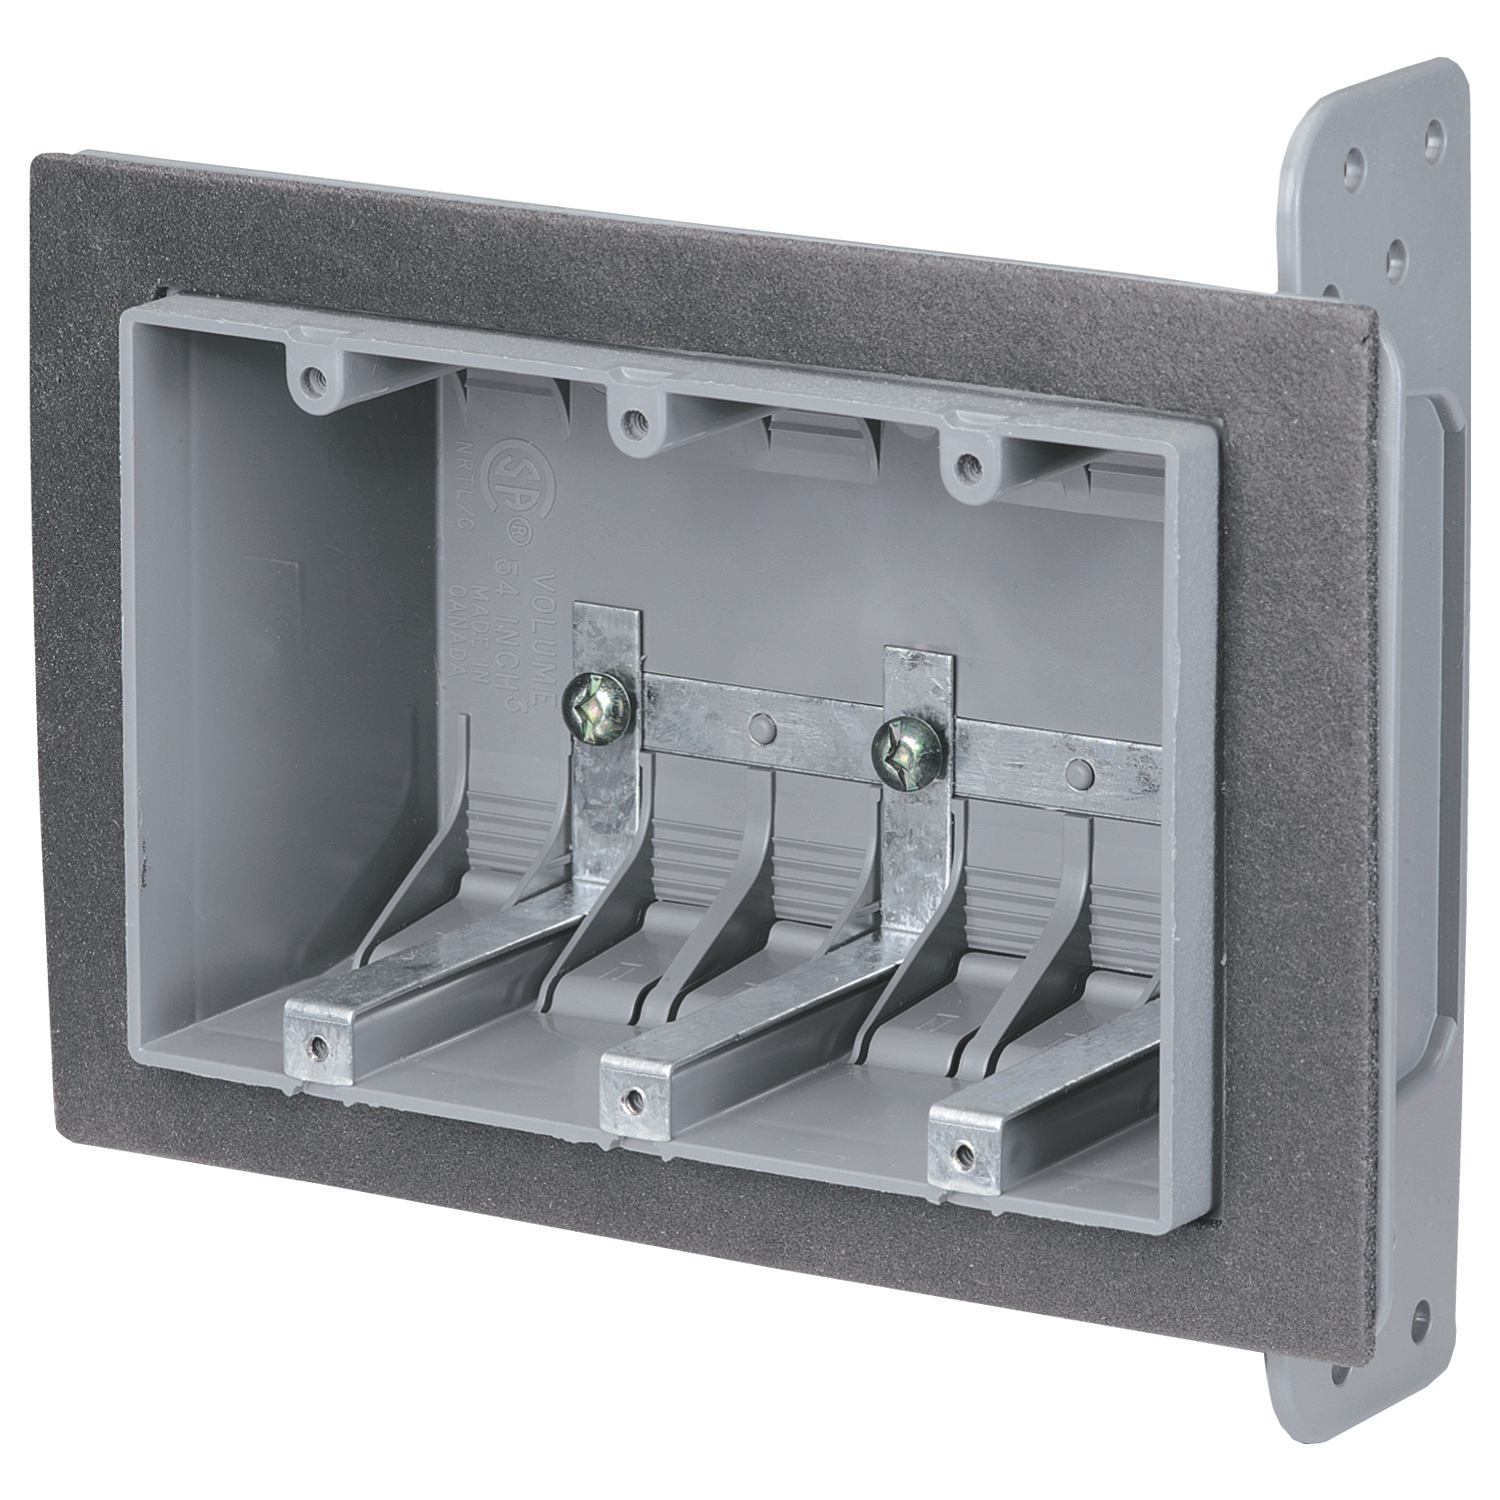 NuTek,3-FWSW,THREE GANG AIRTIGHT DEVICE BOX